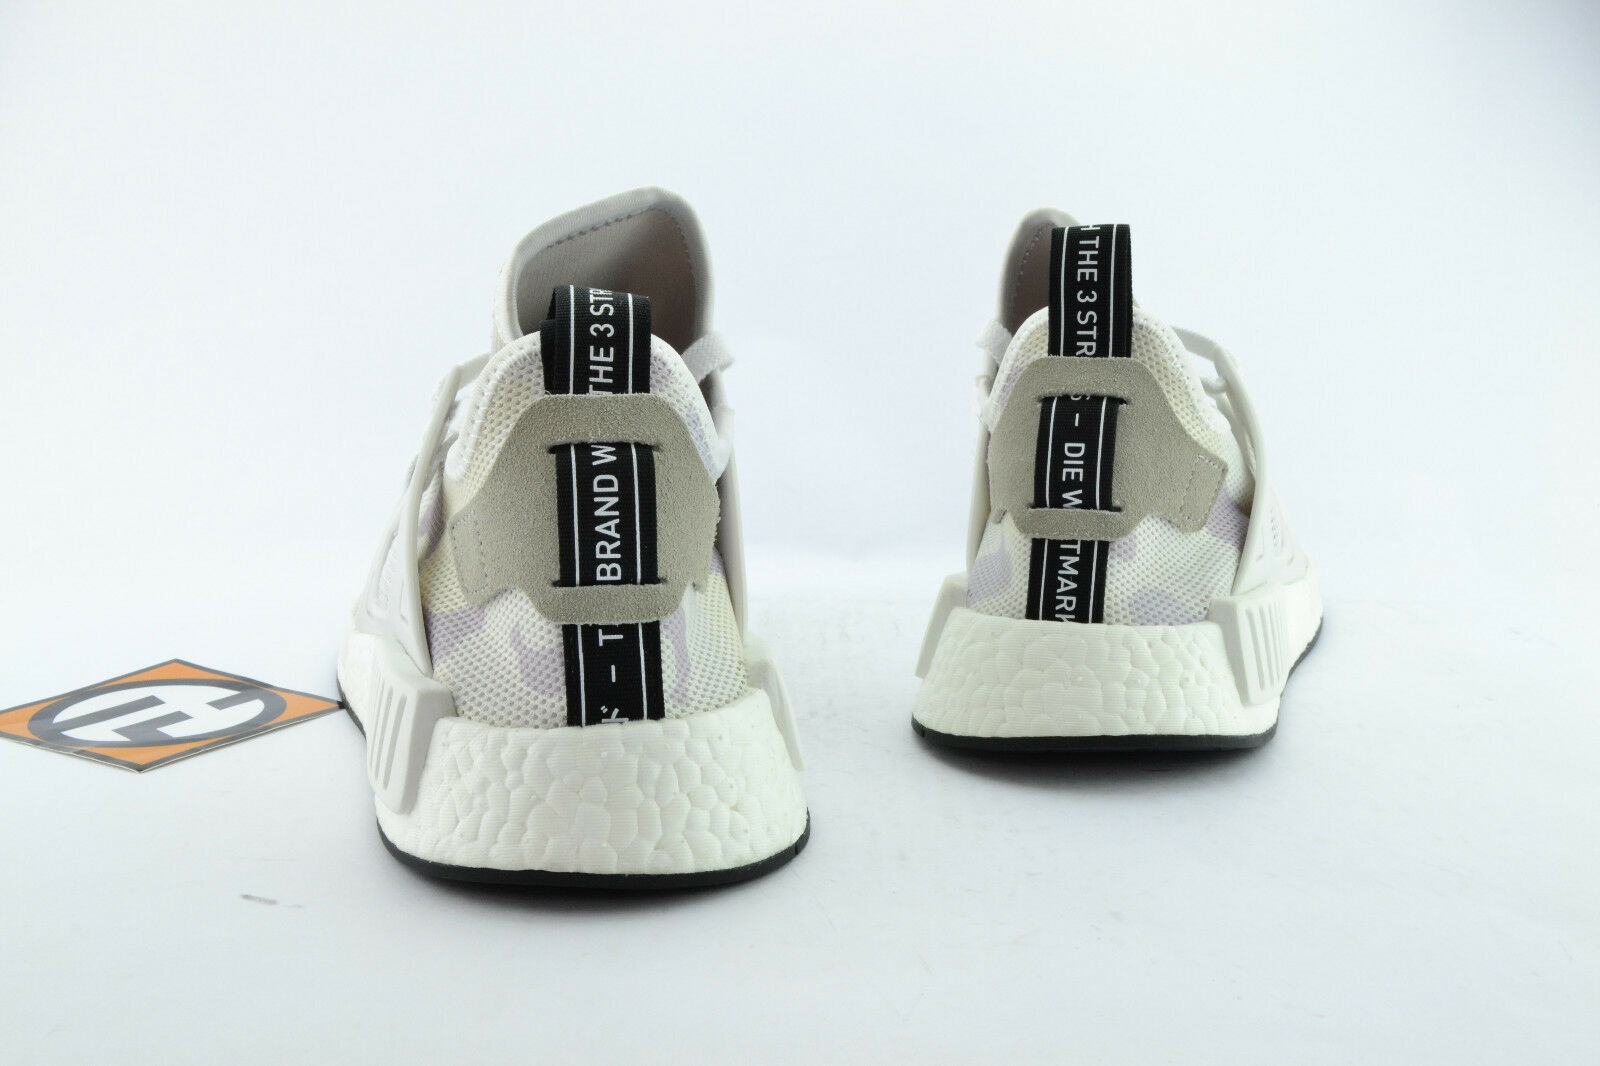 ae89320d5 Men s adidas NMD Xr1 Camo White Ba7233 US Size 13 9.5 for sale ...